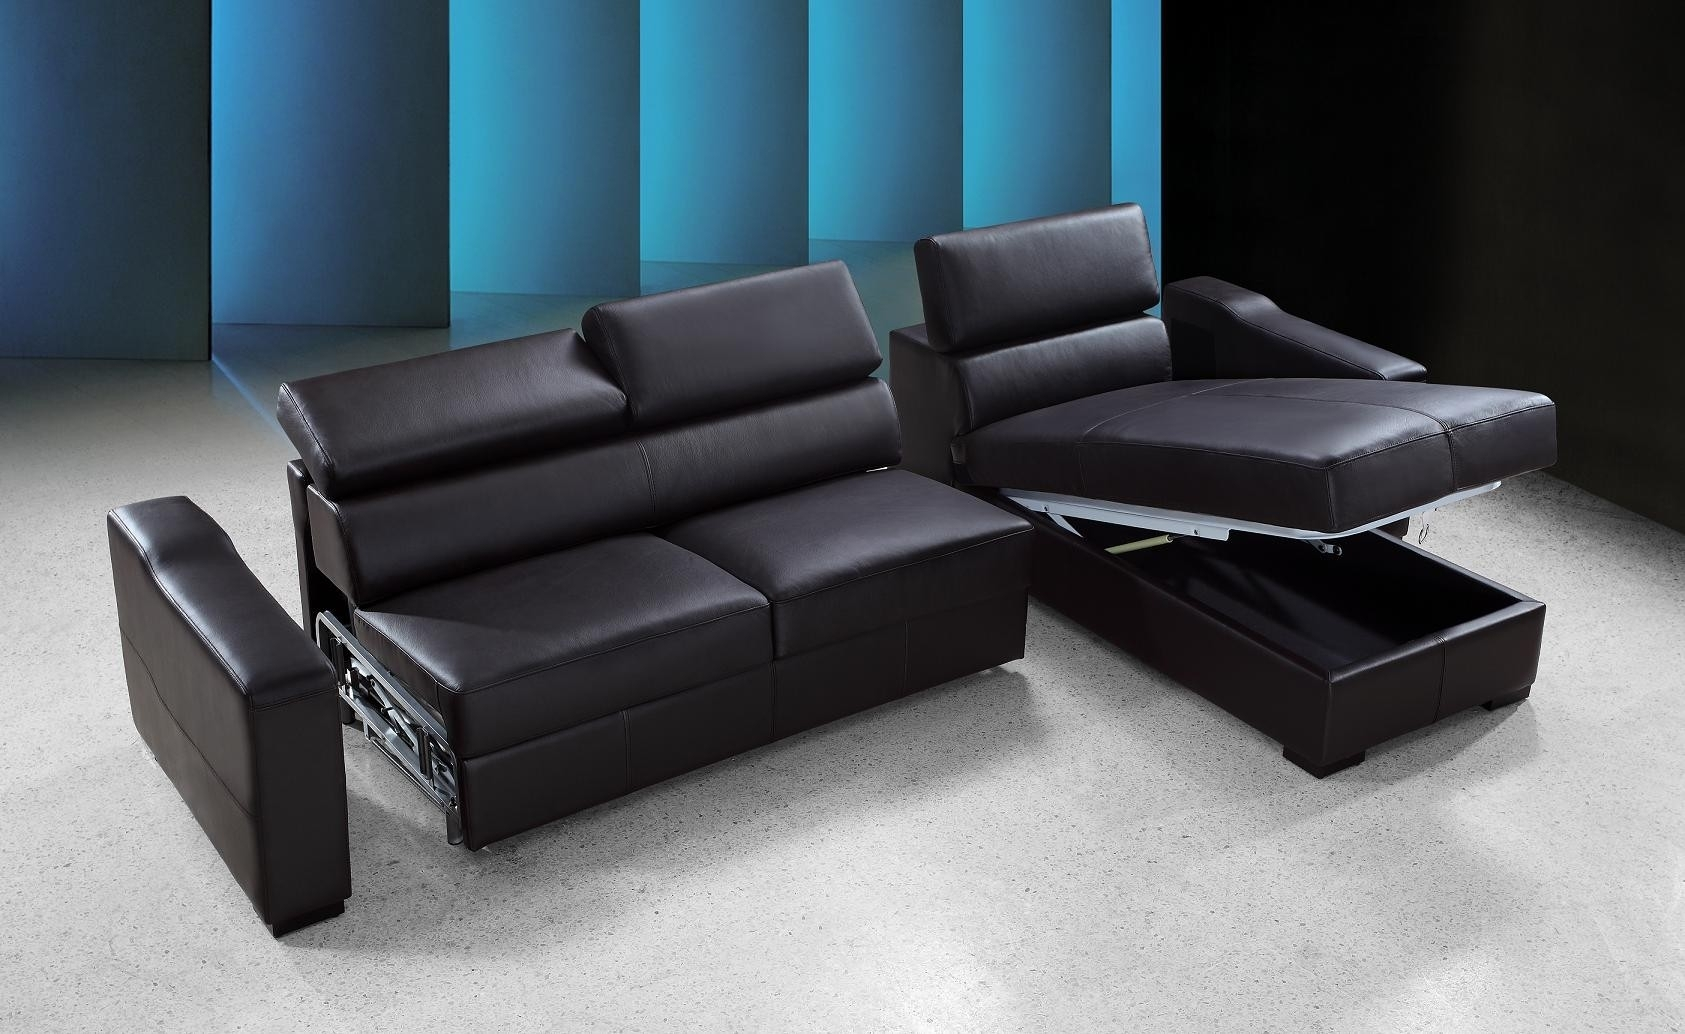 Sofa : Stunning Sectional Sofa Bed Apk 27801 2S 10X8 Cropafhs Pdp With 10X8 Sectional Sofas (Image 9 of 10)